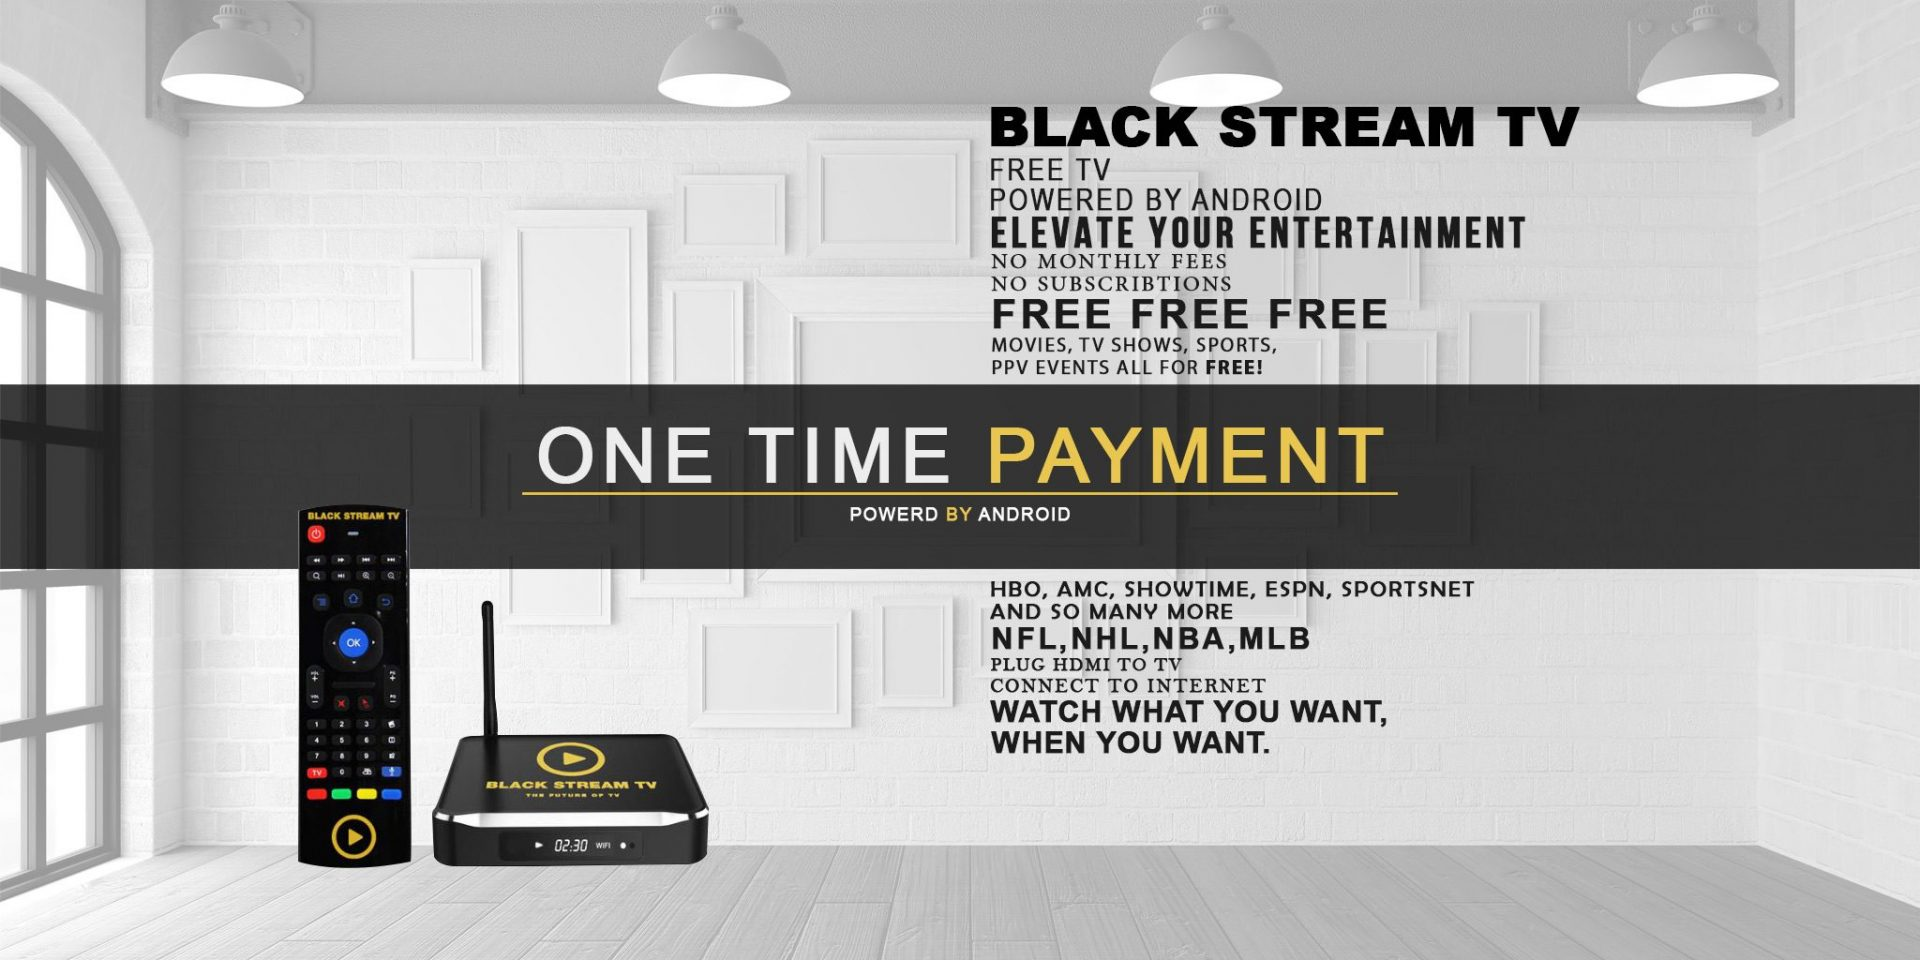 Black Stream TV